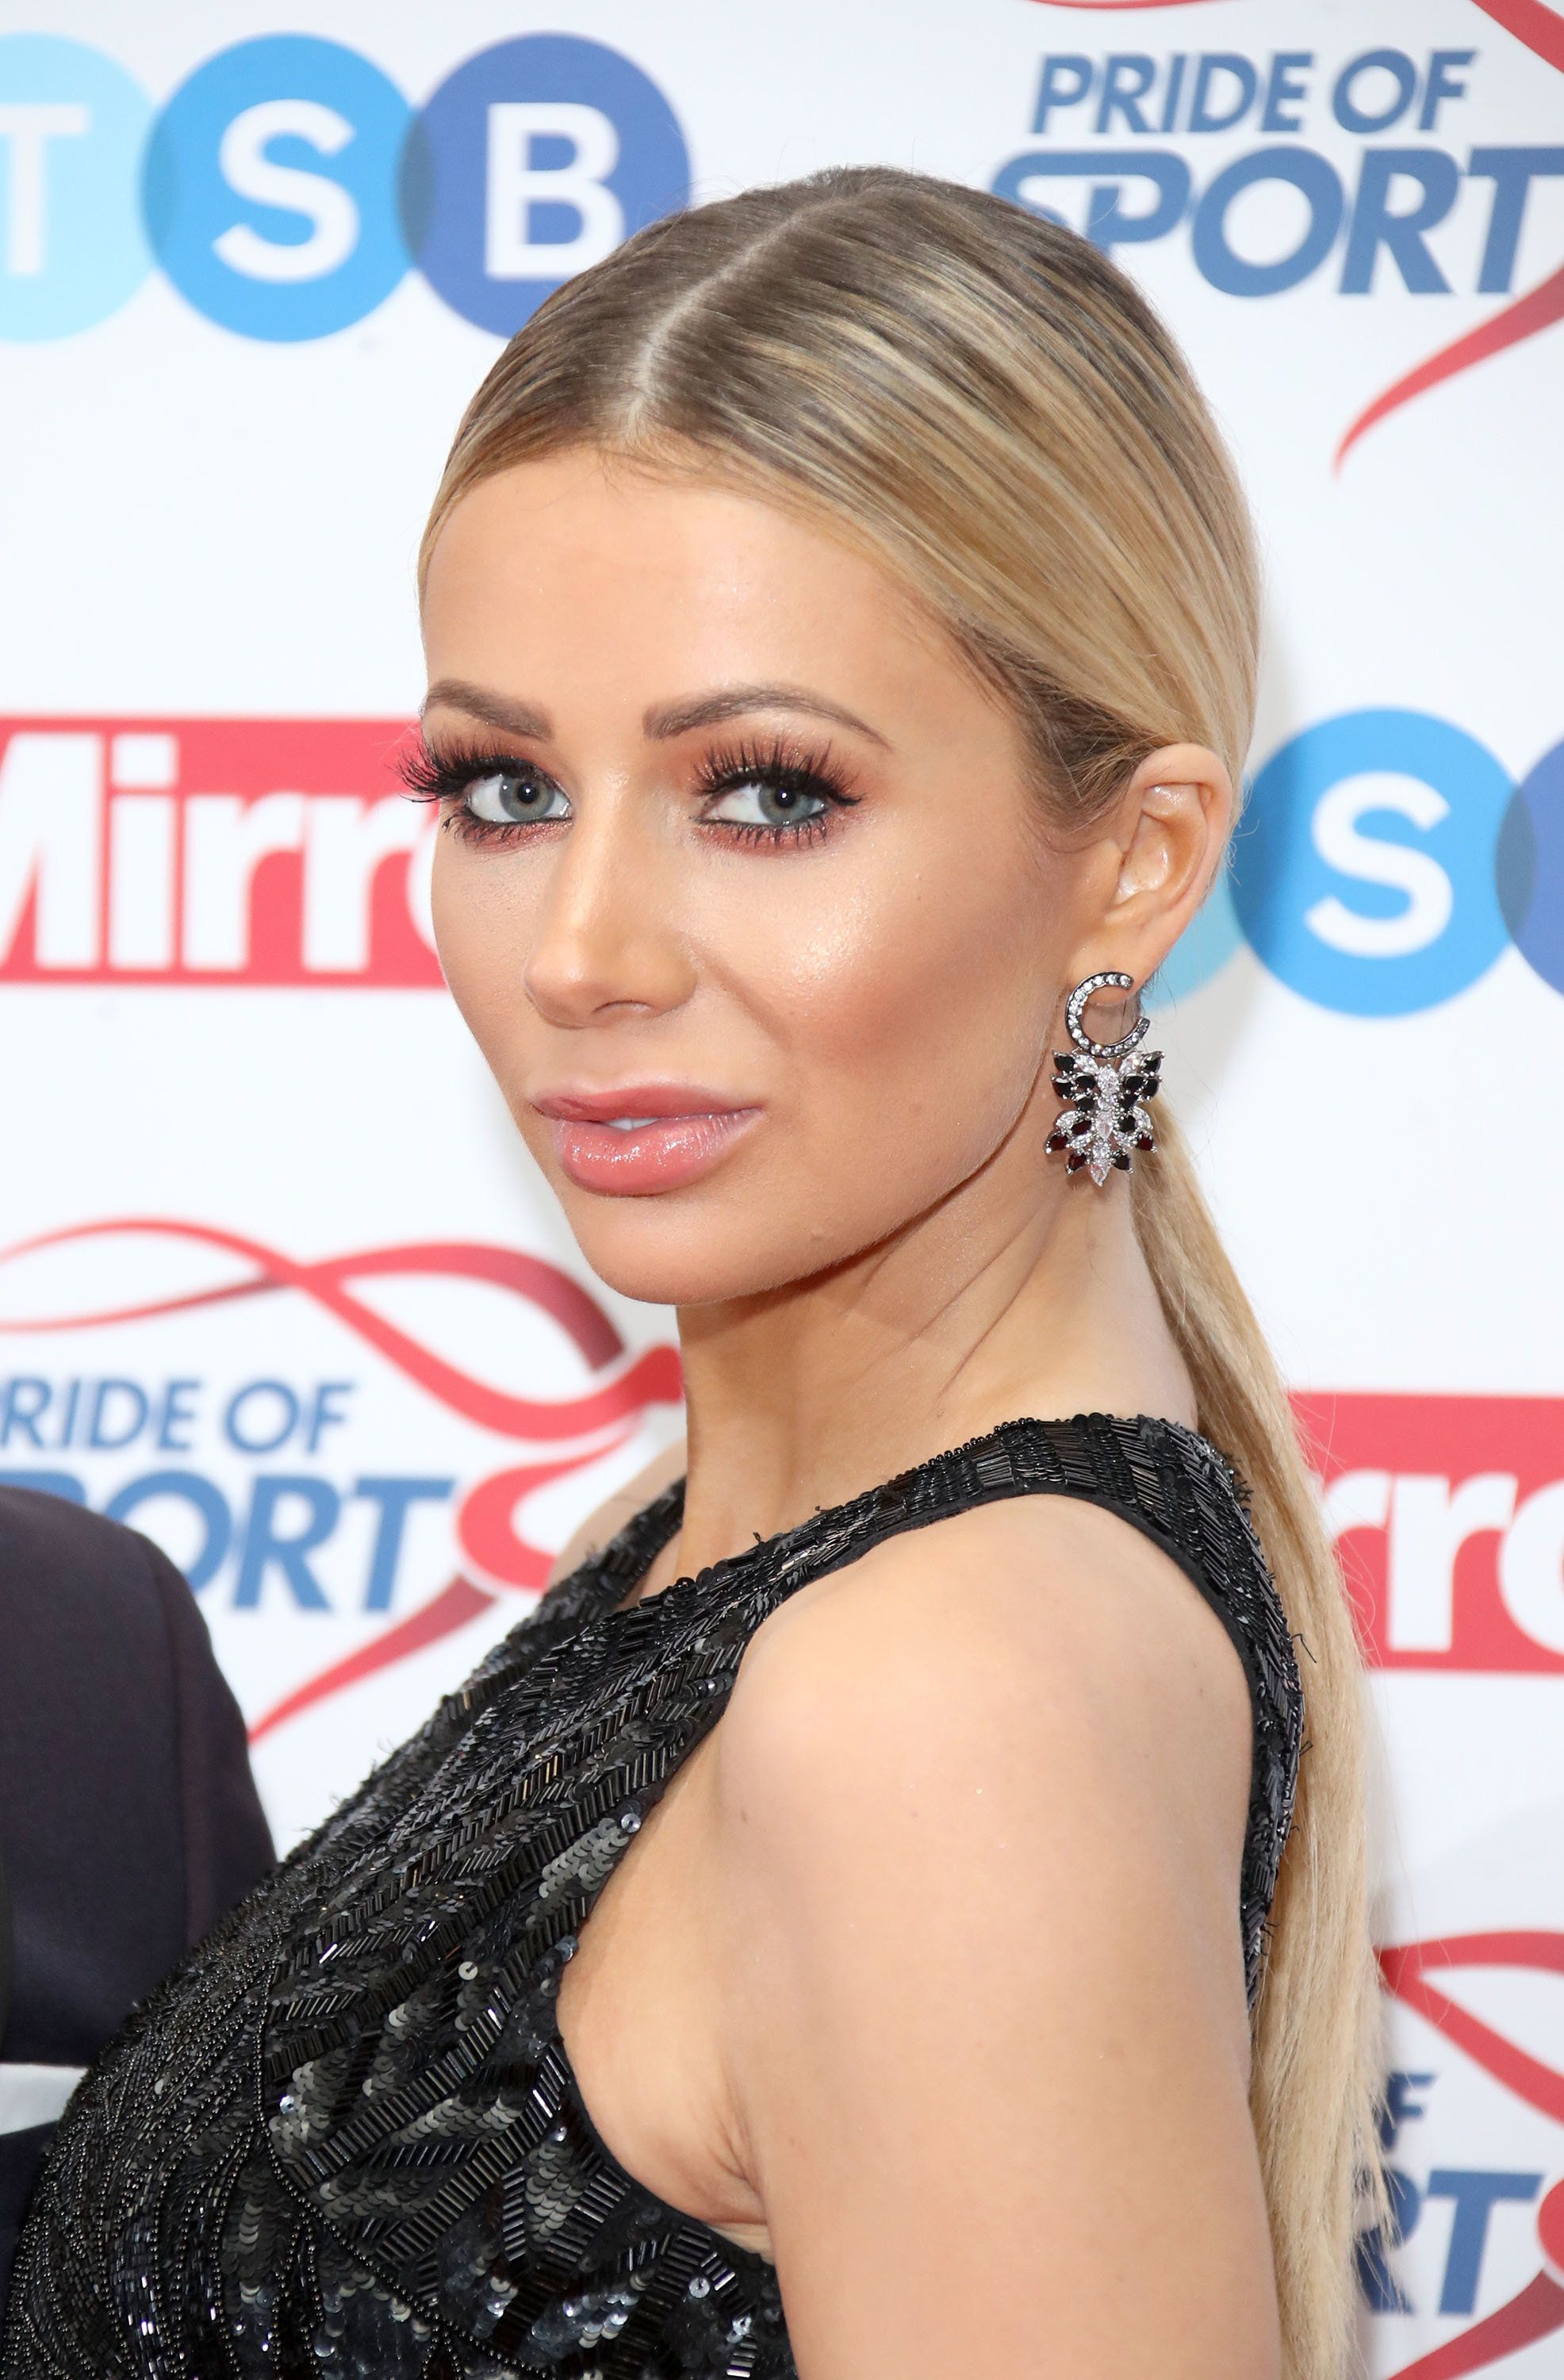 Olivia Attwood Opens Up About Her Post-'Love Island' Experiences Of The Gender Pay Gap